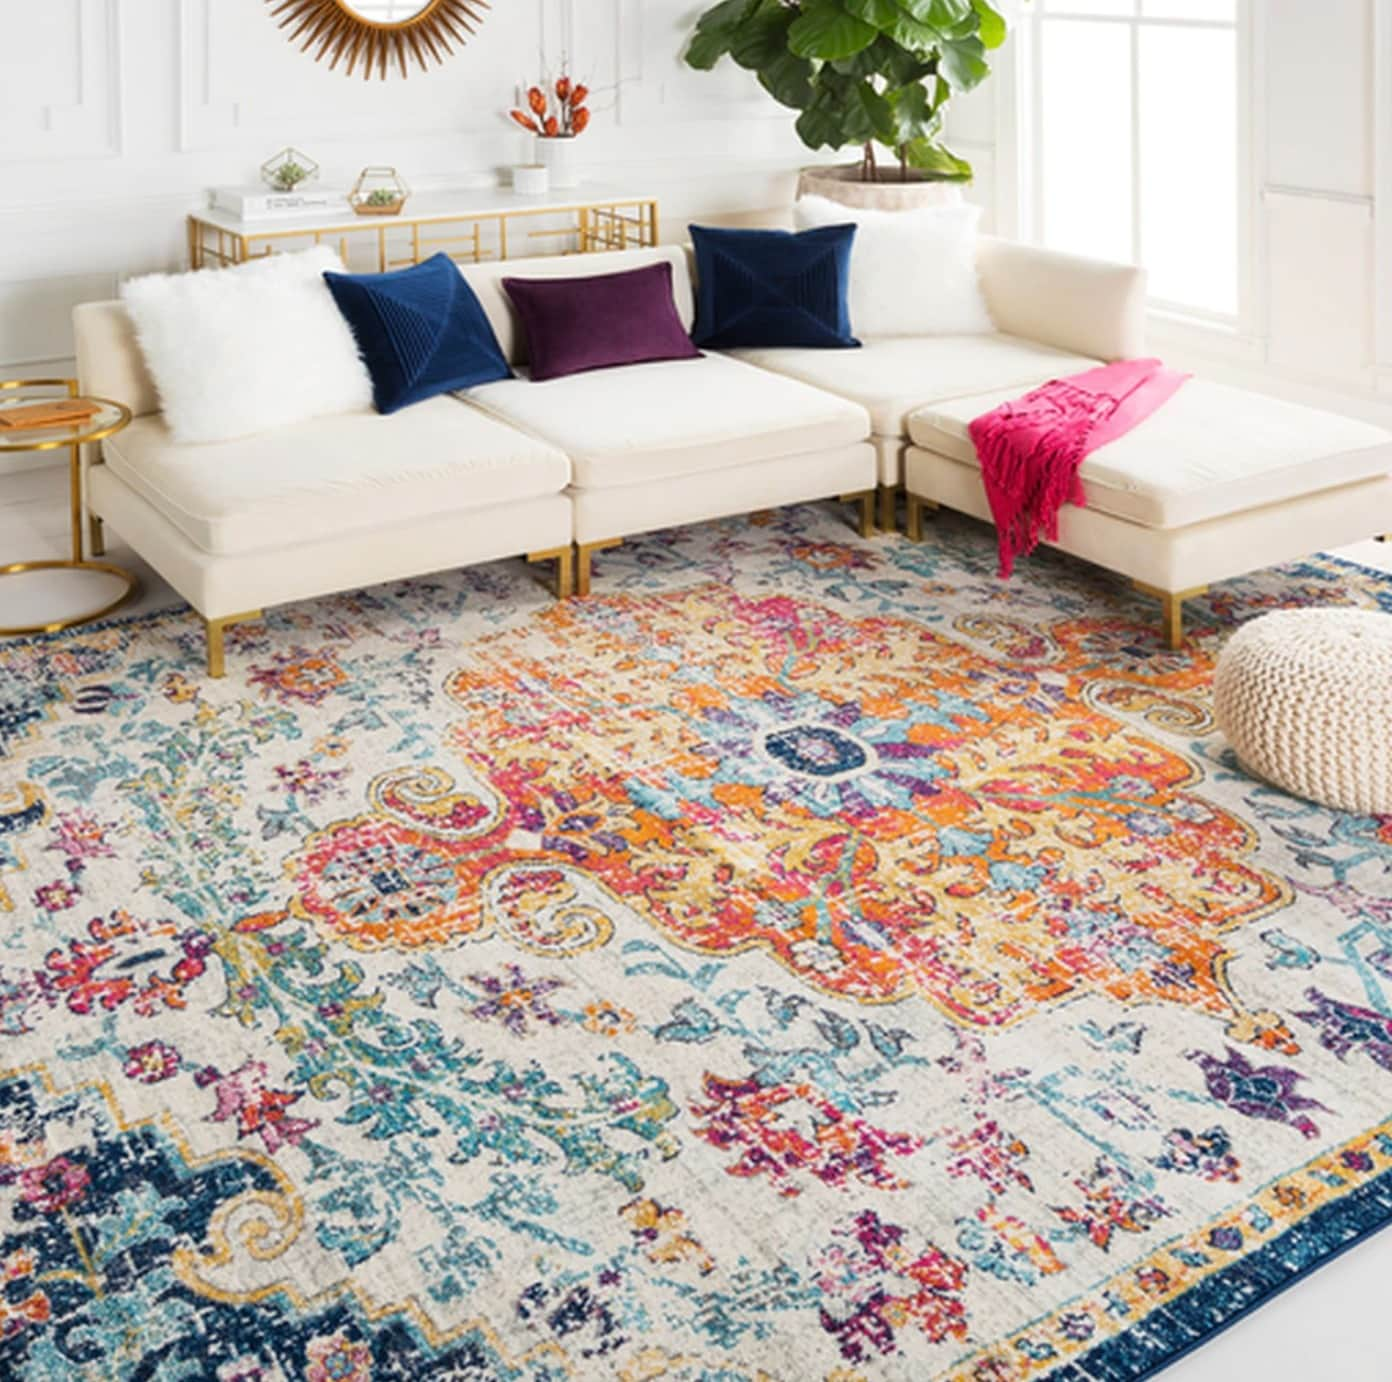 Make The Rug The Main Feature of Your Room